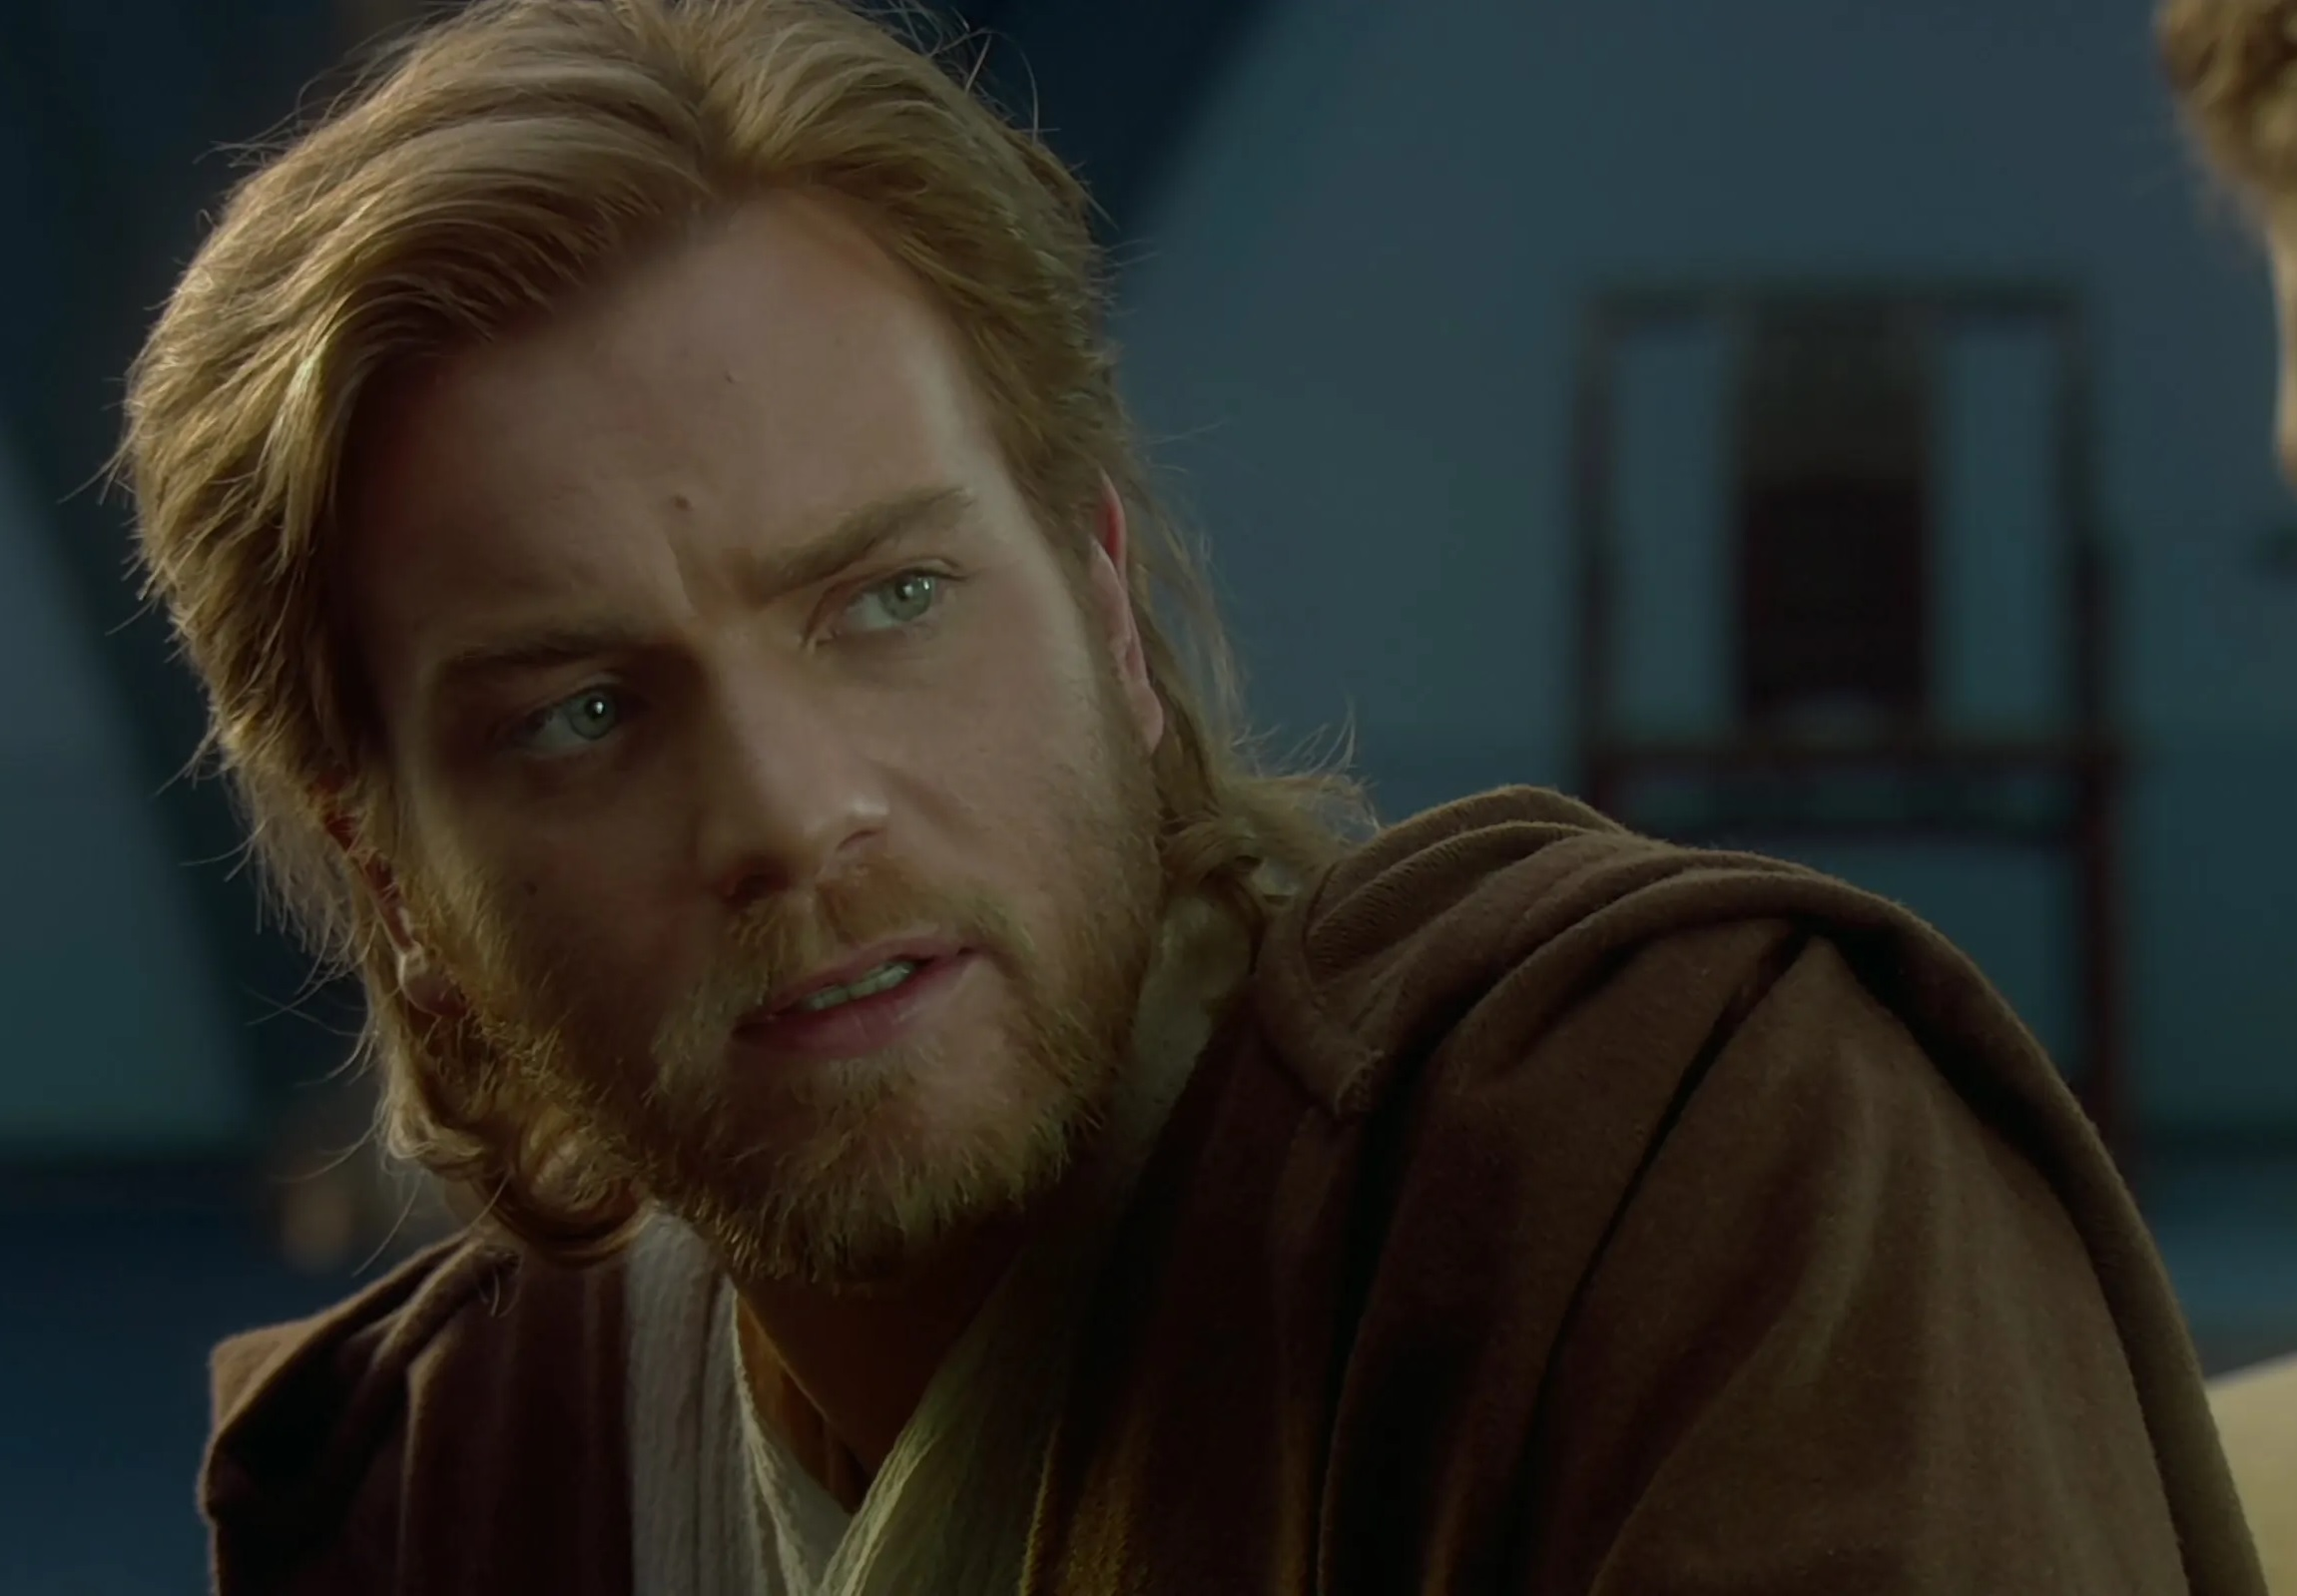 File:Ewan McGregor as Obi-Wan Kenobi (AOTC).jpg